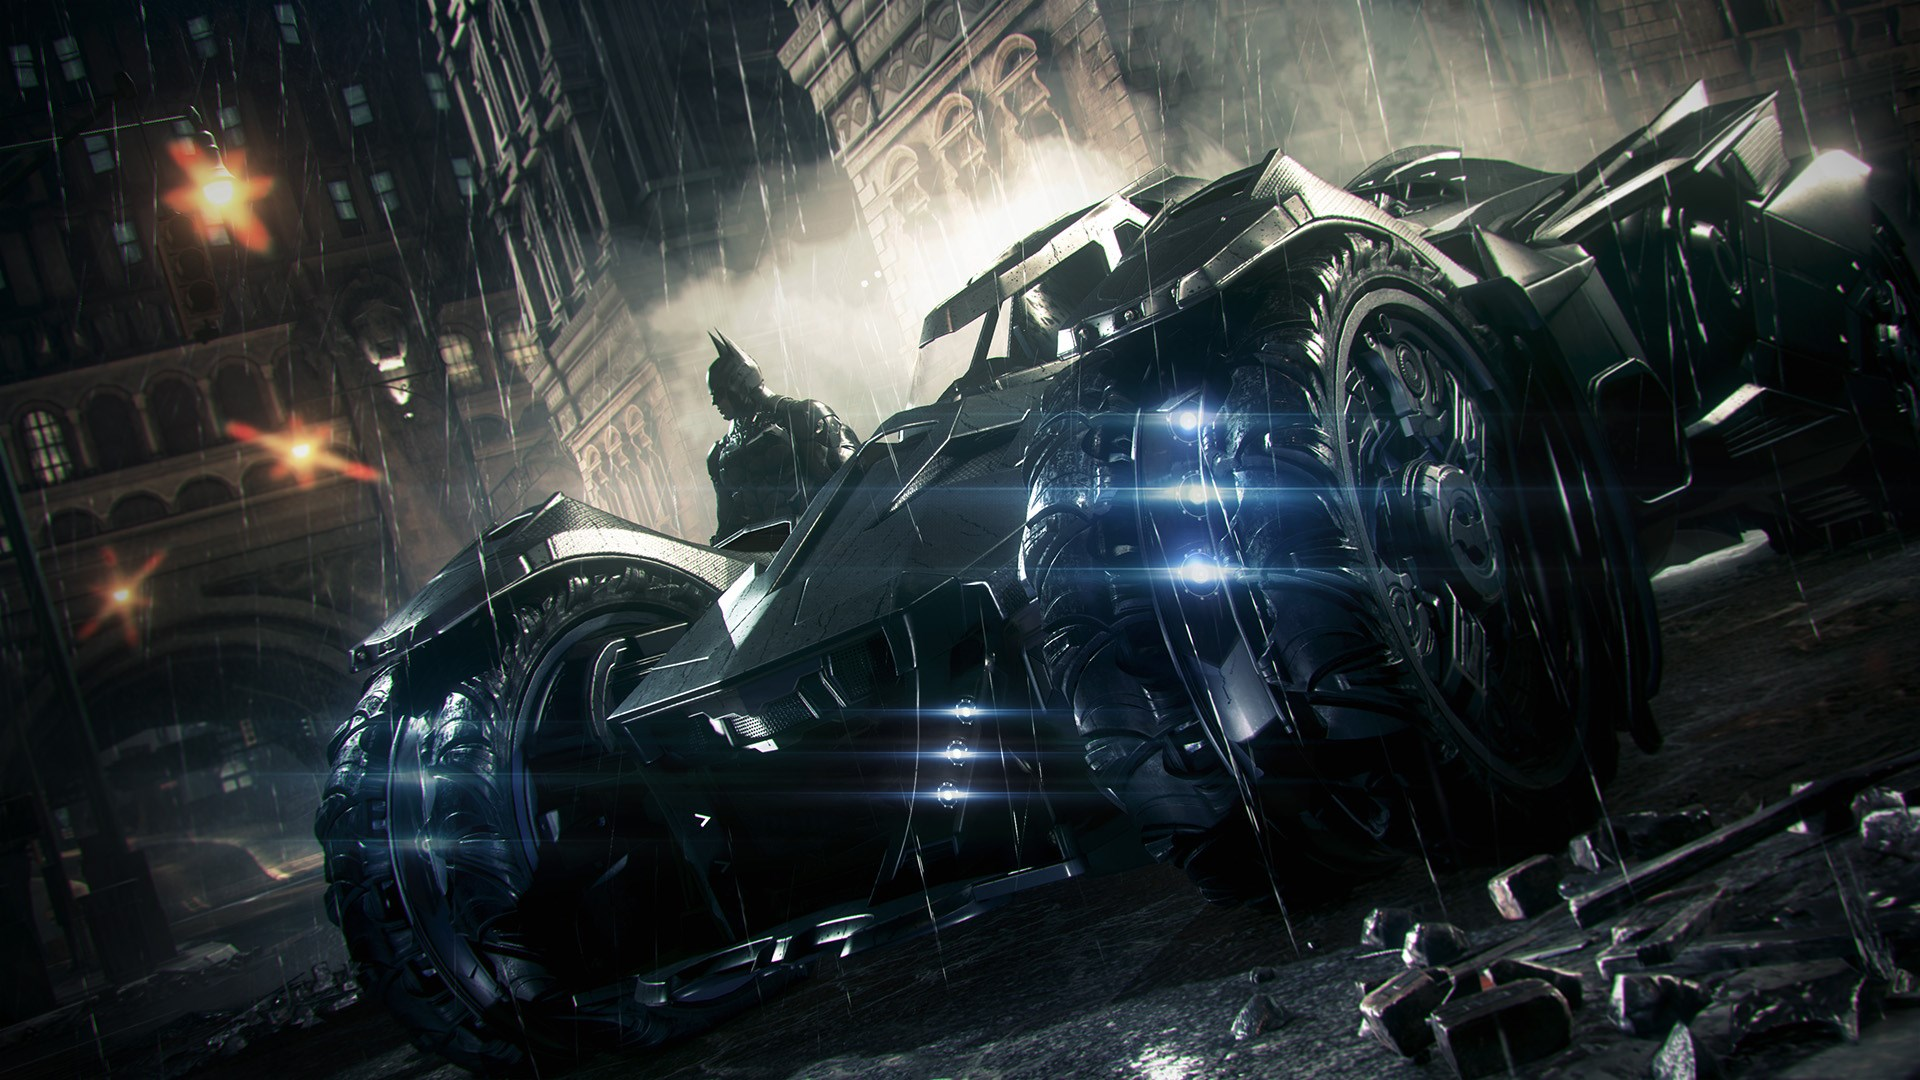 1920x1080-windows-batman-arkham-knight-wallpaper-wpc9001133